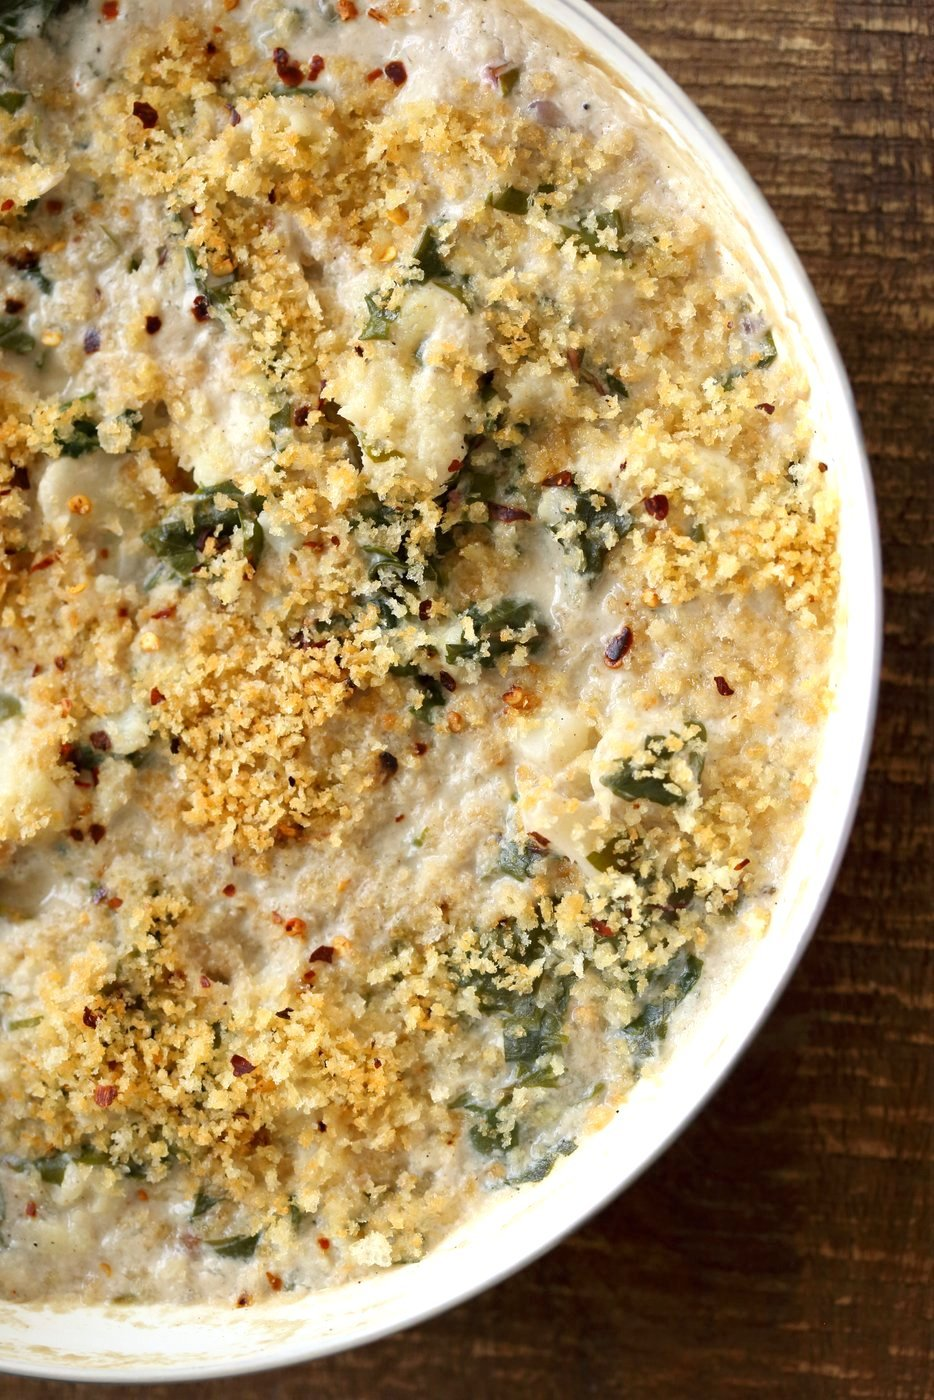 Vegan Cauliflower Gratin - Creamy, Spiced Cauliflower Casserole. No Bake Skillet Gratin or Bake with a garlic breadcrumb topping. Vegan Soy-free Recipe, Can be gluten-free and nut-free. | VeganRicha.com